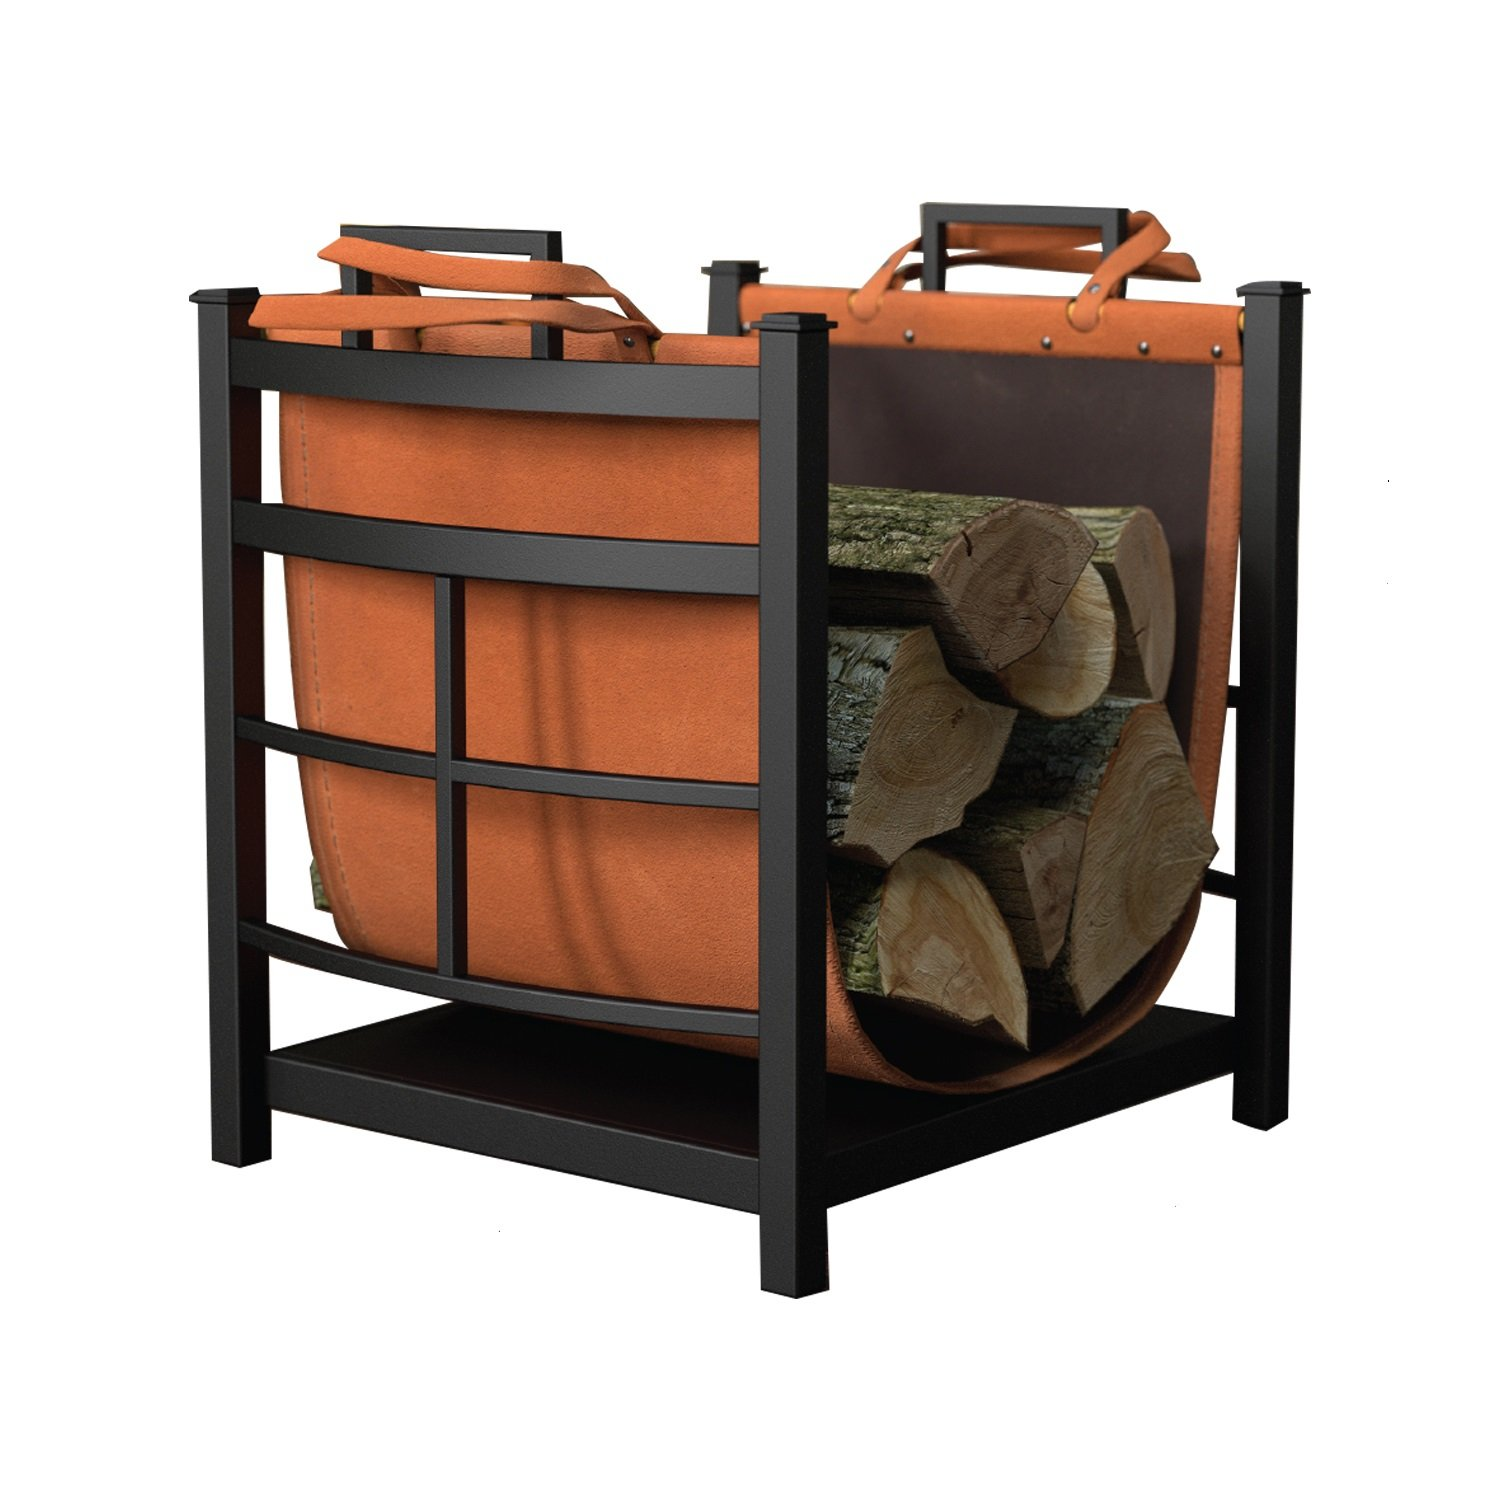 Panacea Products 15245 Mission Log Bin with Log Carrier by Panacea Products